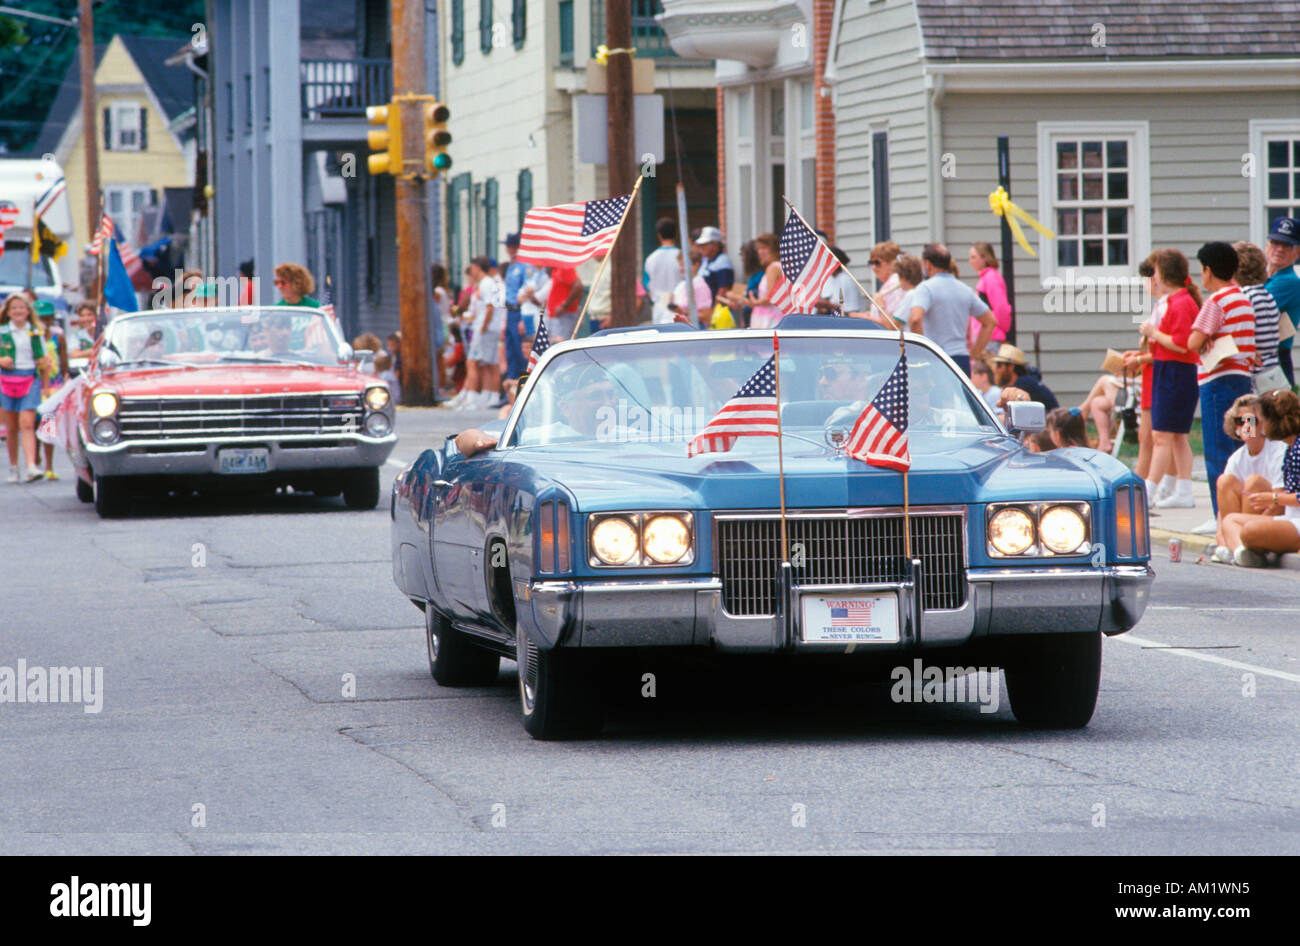 Antique Convertibles in July 4th Parade Centreville Maryland - Stock Image